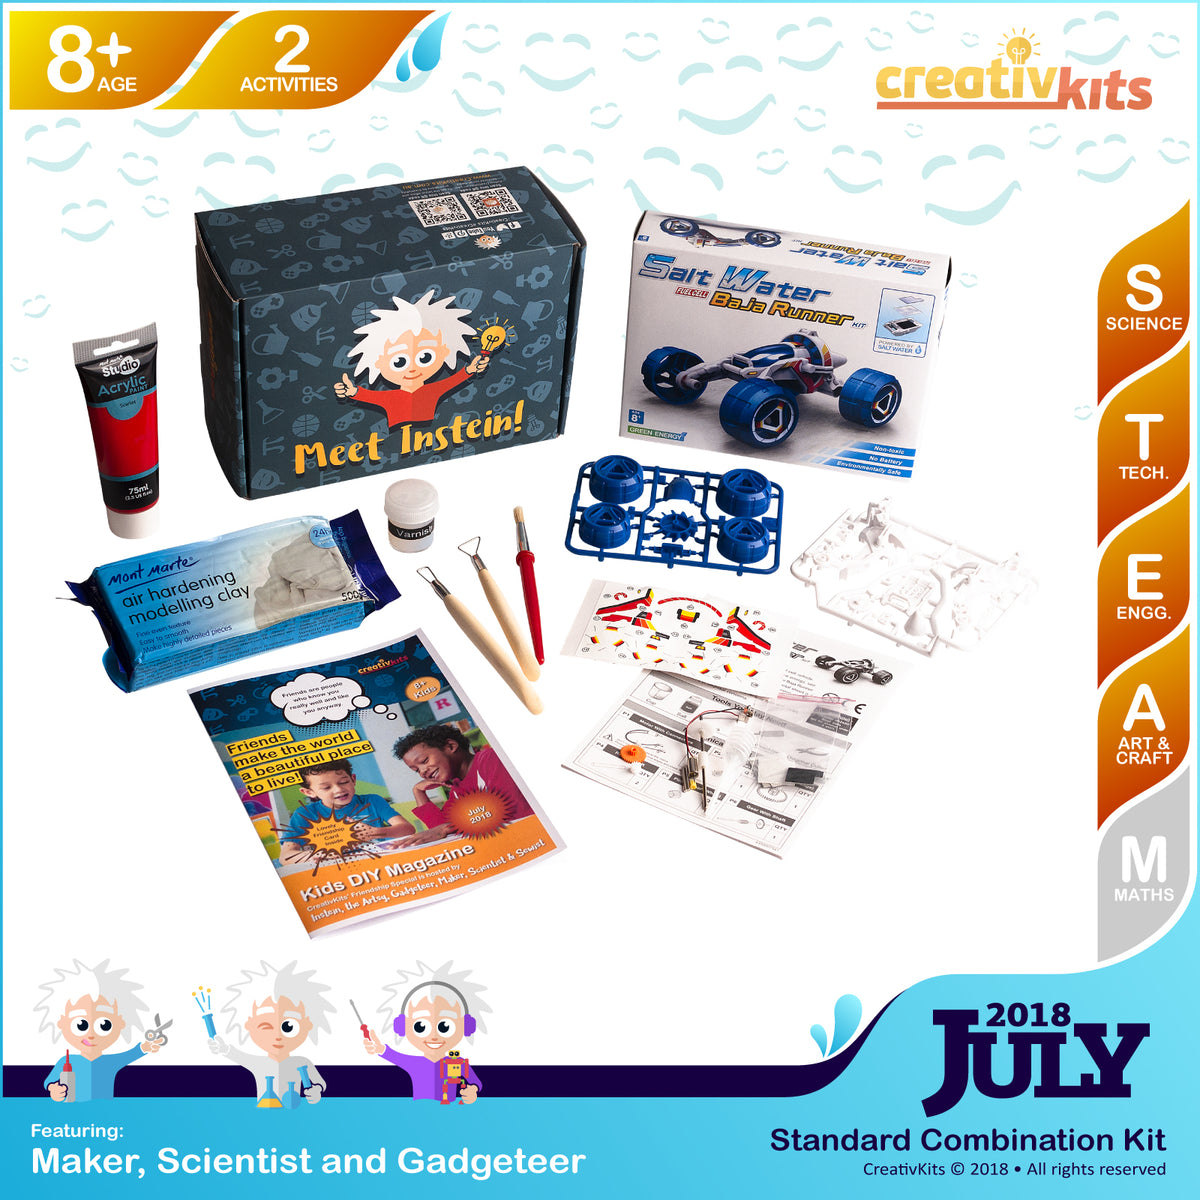 Salt-water Baja Runner and Ceramic Hand Dish | July Art and Science Combination Kit | Age 8+